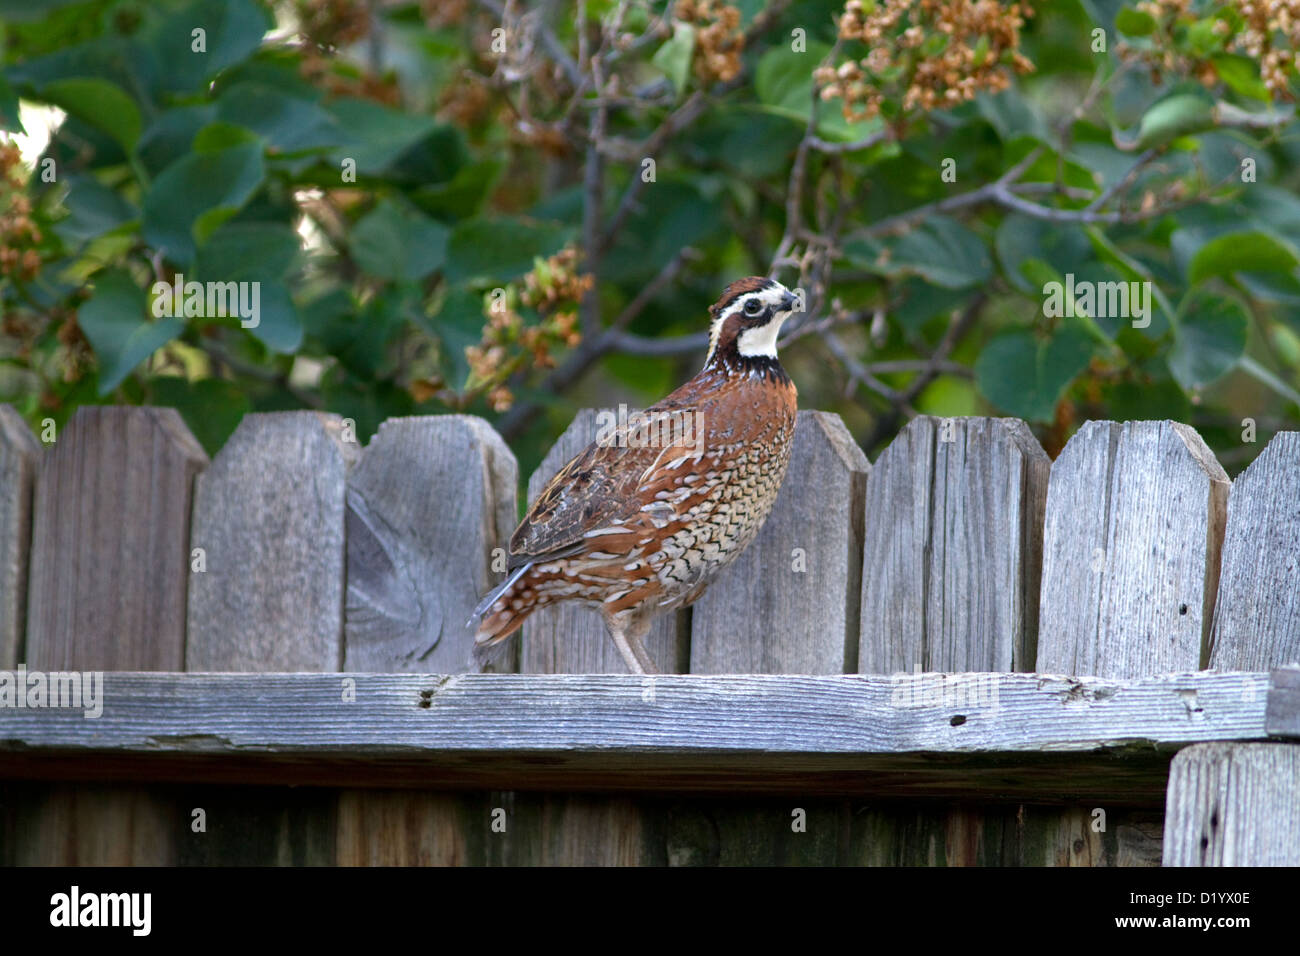 Adult male Northern Bobwhite quail in a residentail backyard, Boise, Idaho, USA. - Stock Image